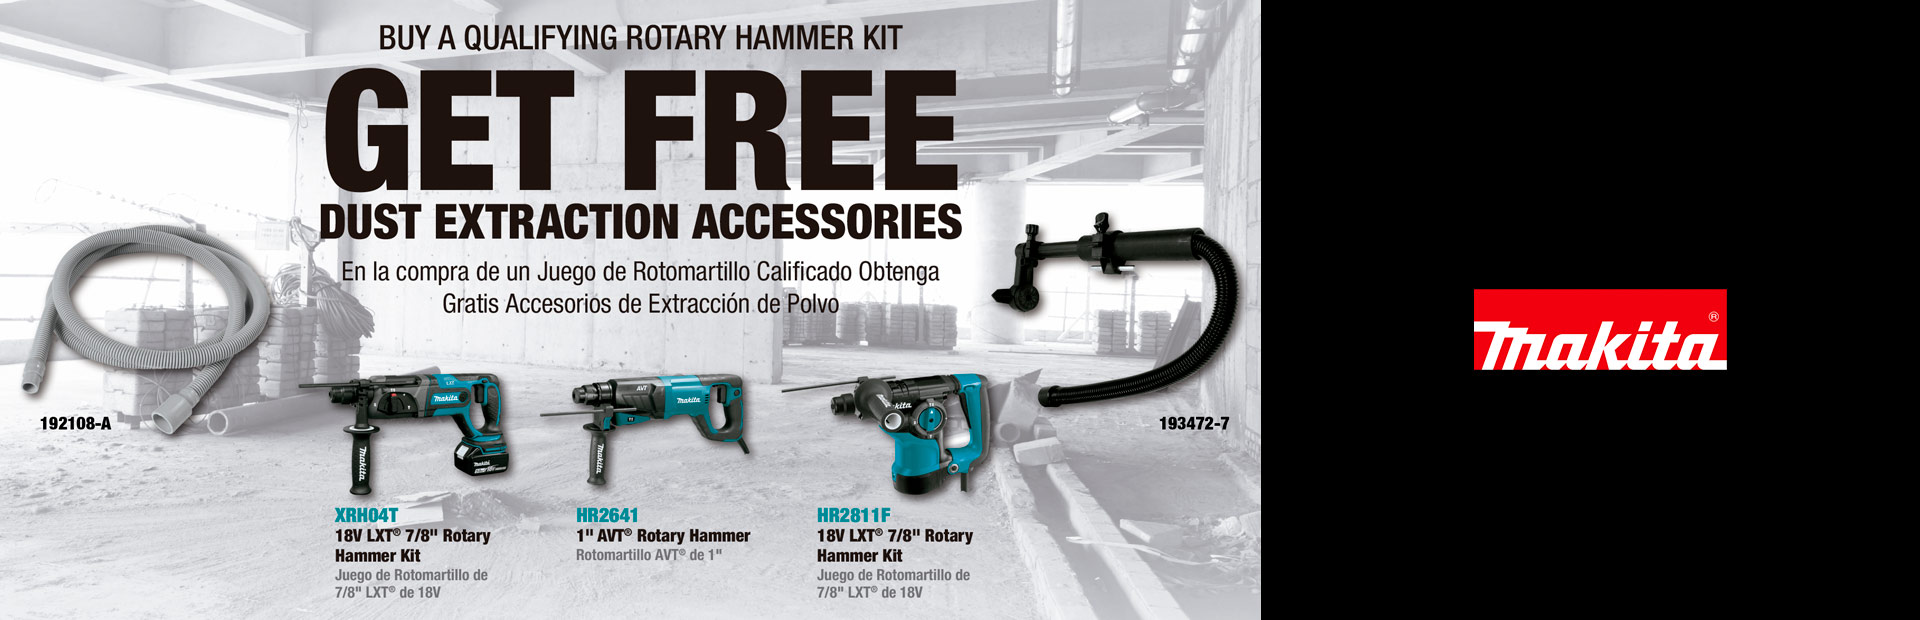 Makita: BUY A QUALIFYING ROTARY HAMMER KIT / GRINDER KIT